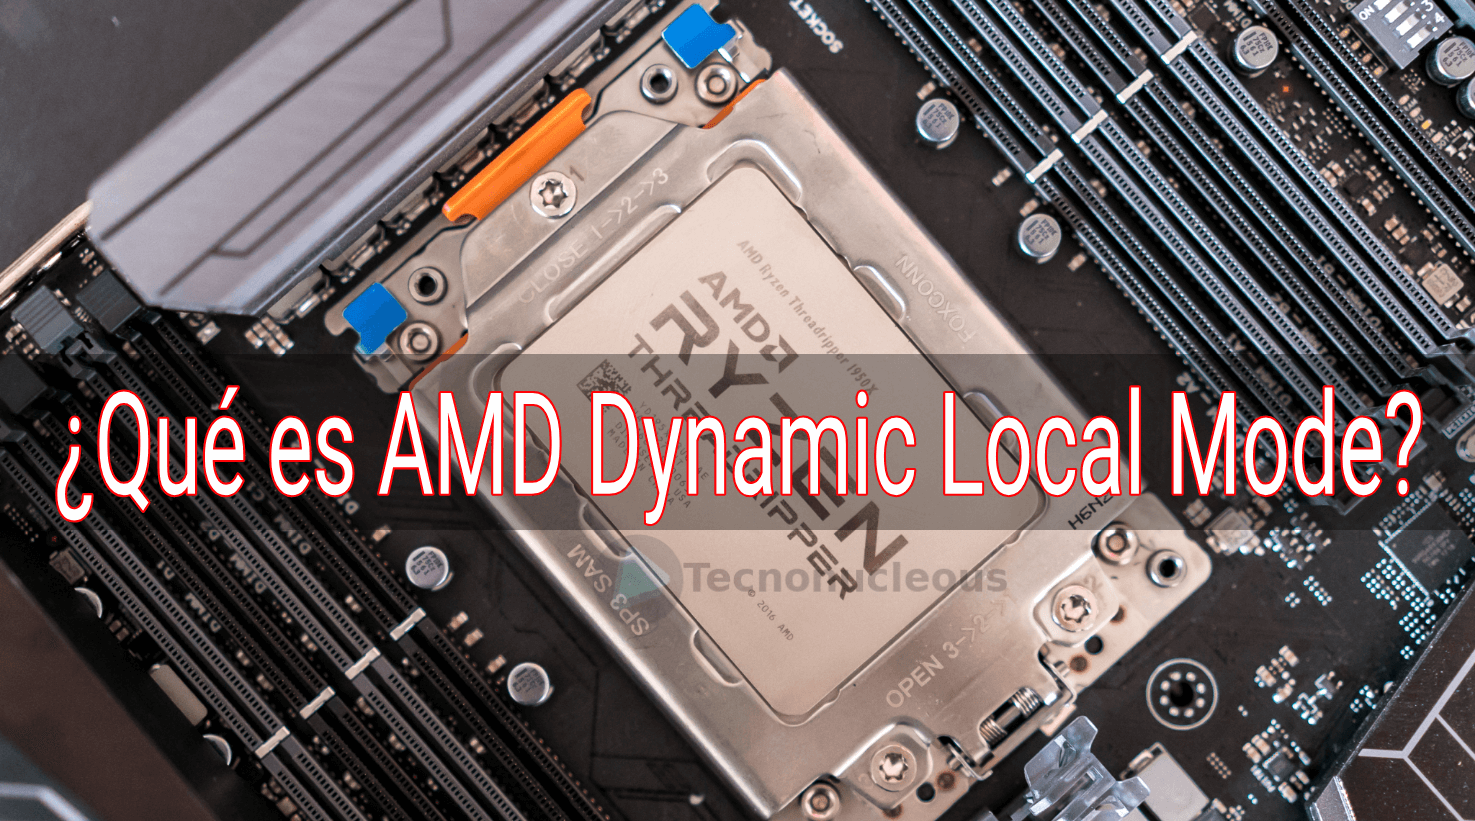 ¿Qué es AMD Dynamic Local Mode?